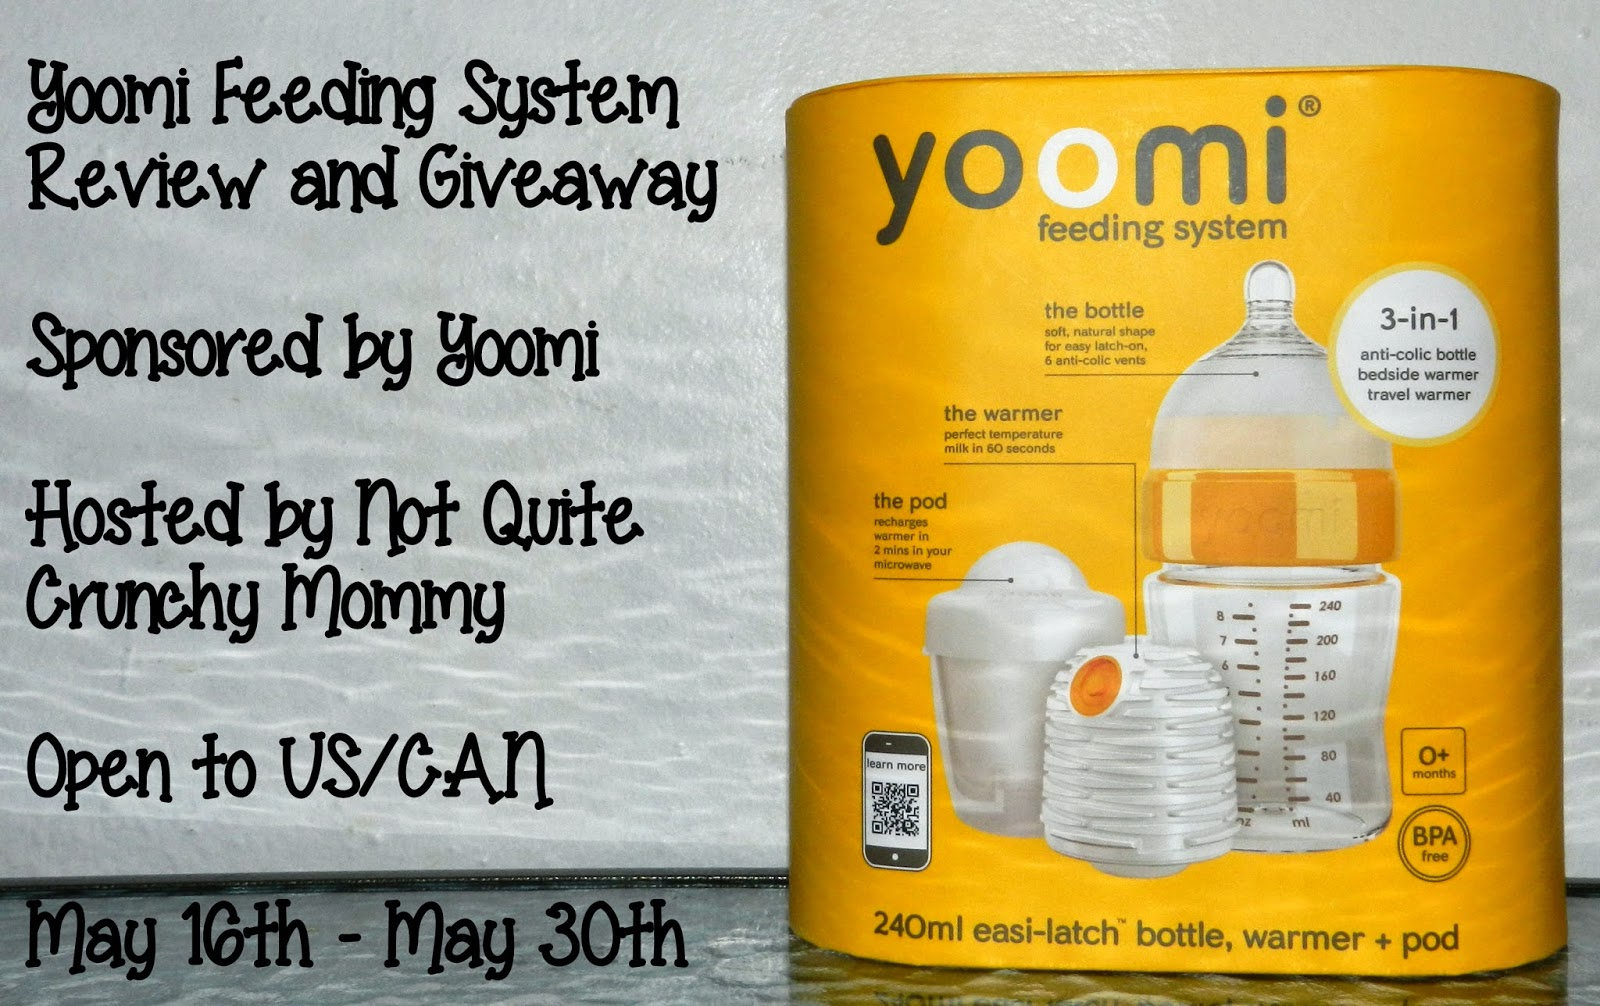 Yoomi Feeding System Review and Giveaway